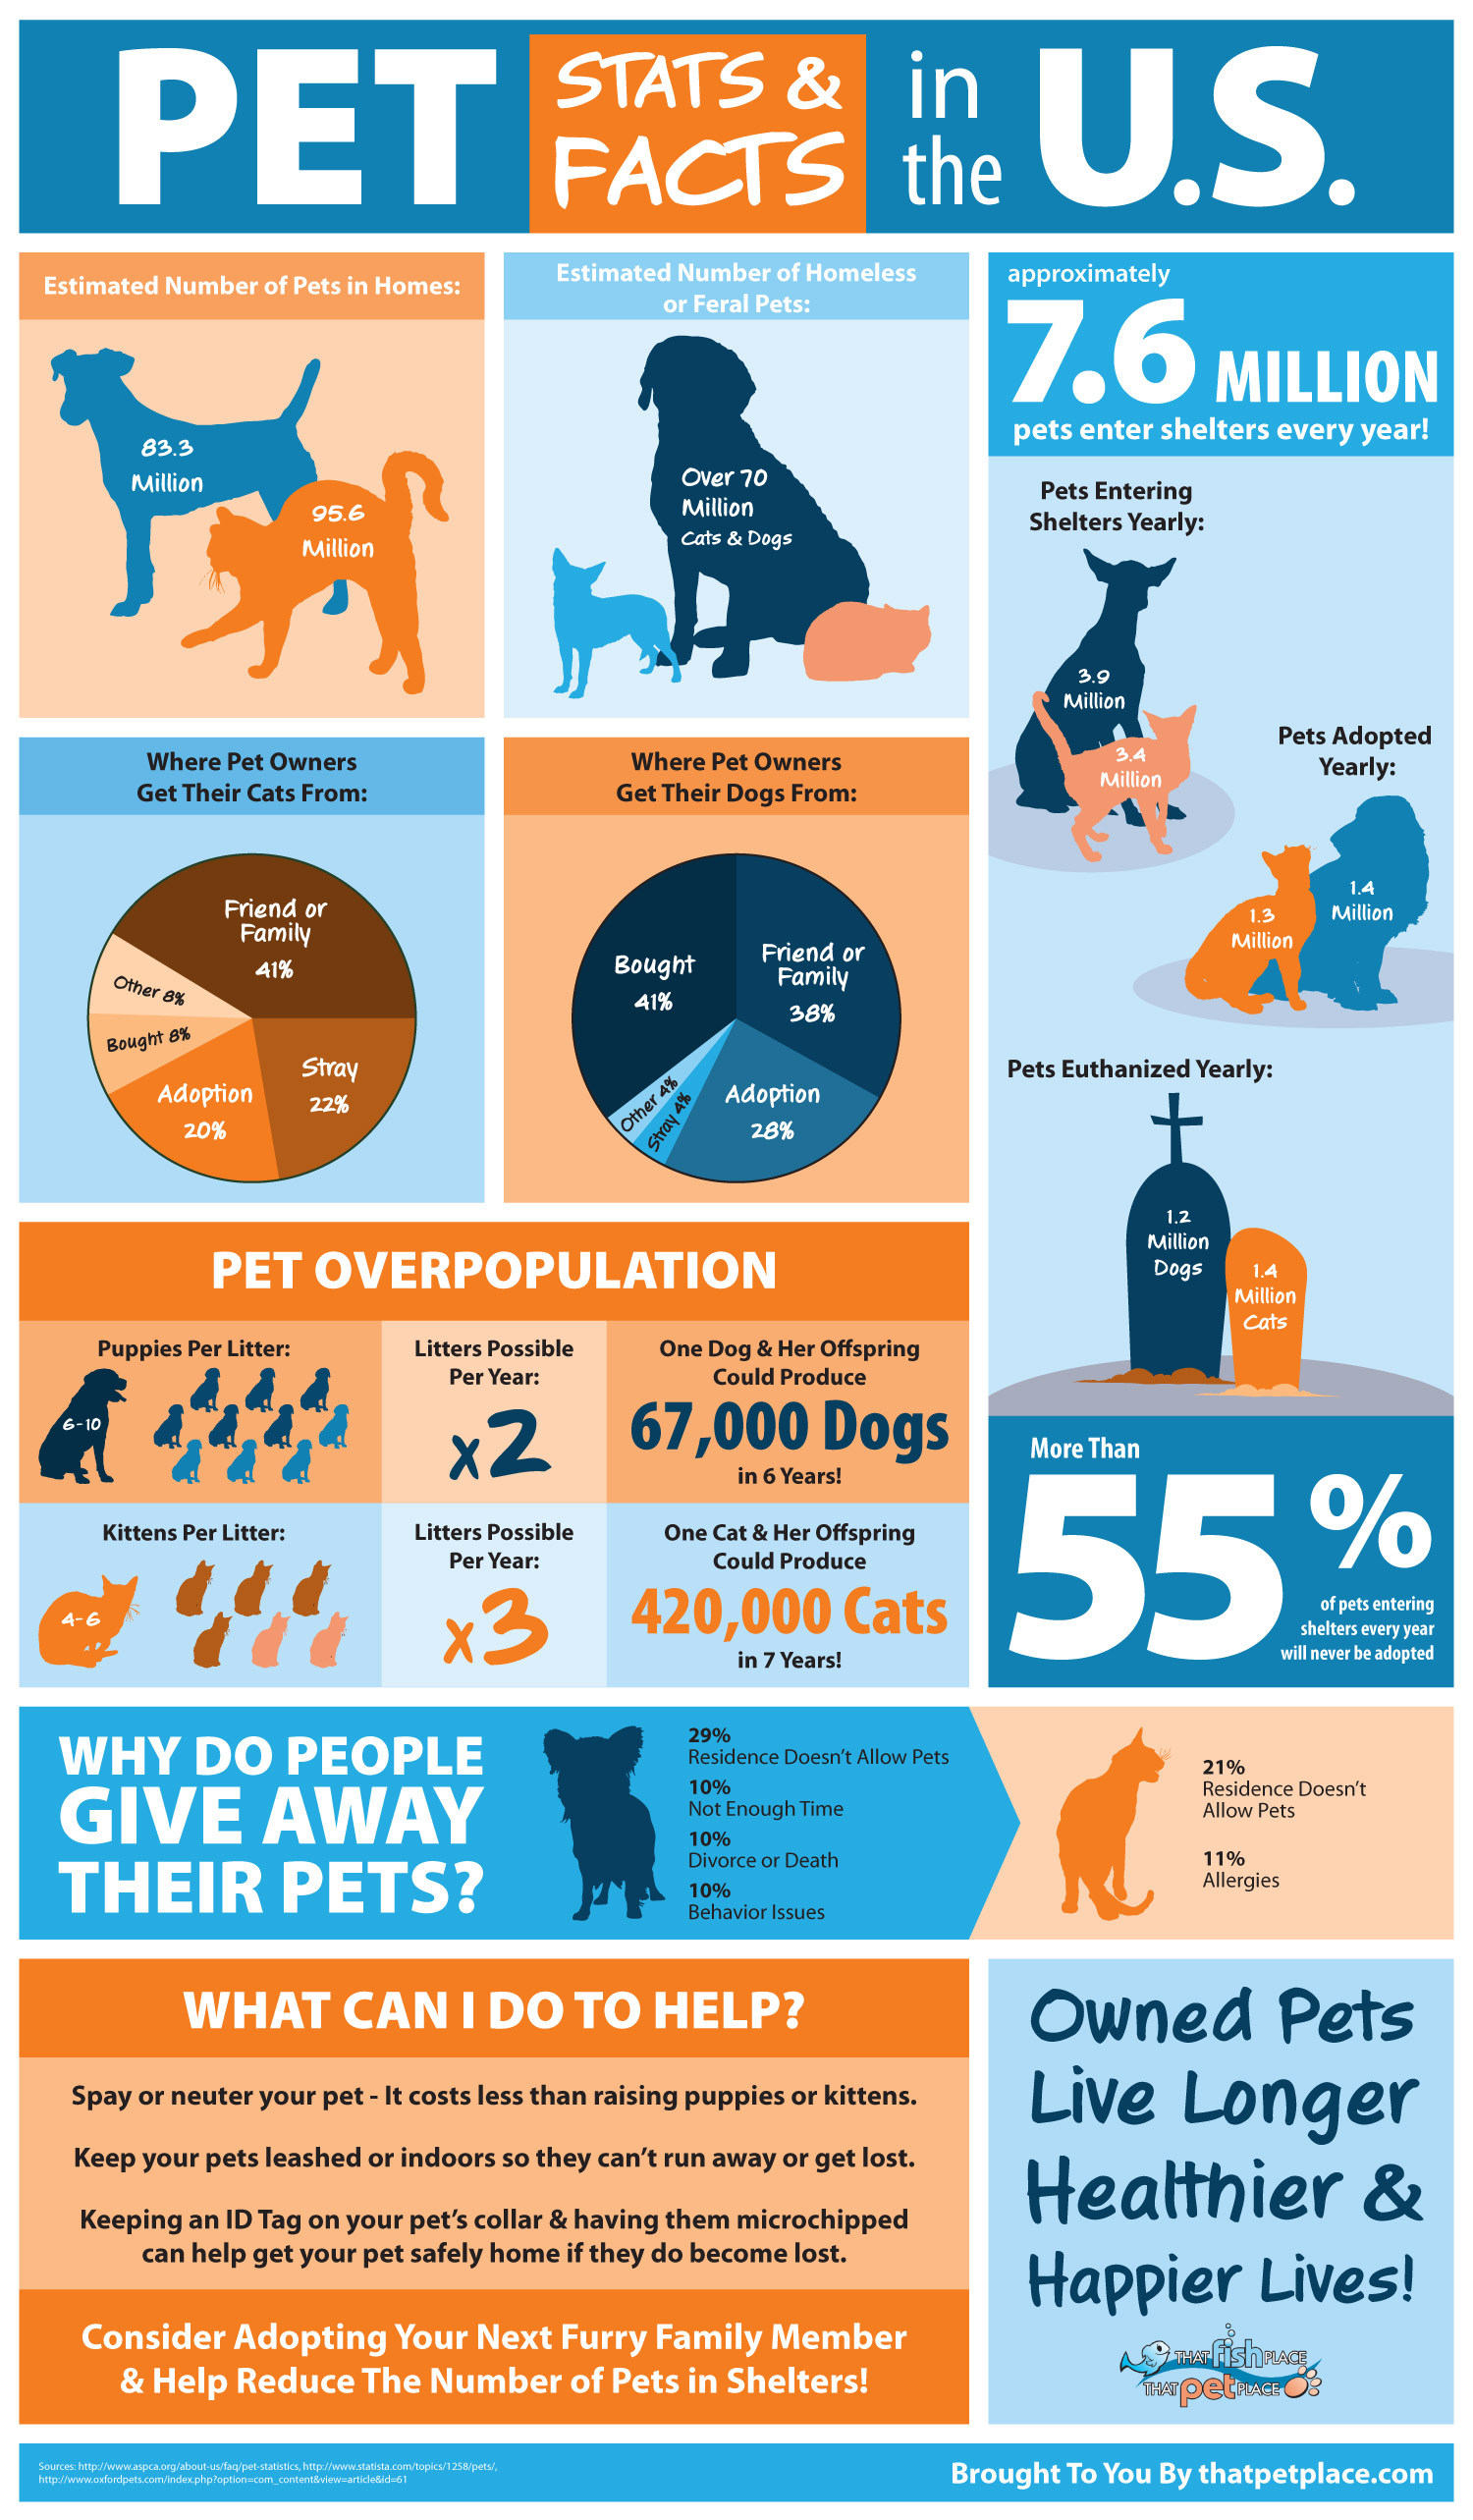 Pet over population